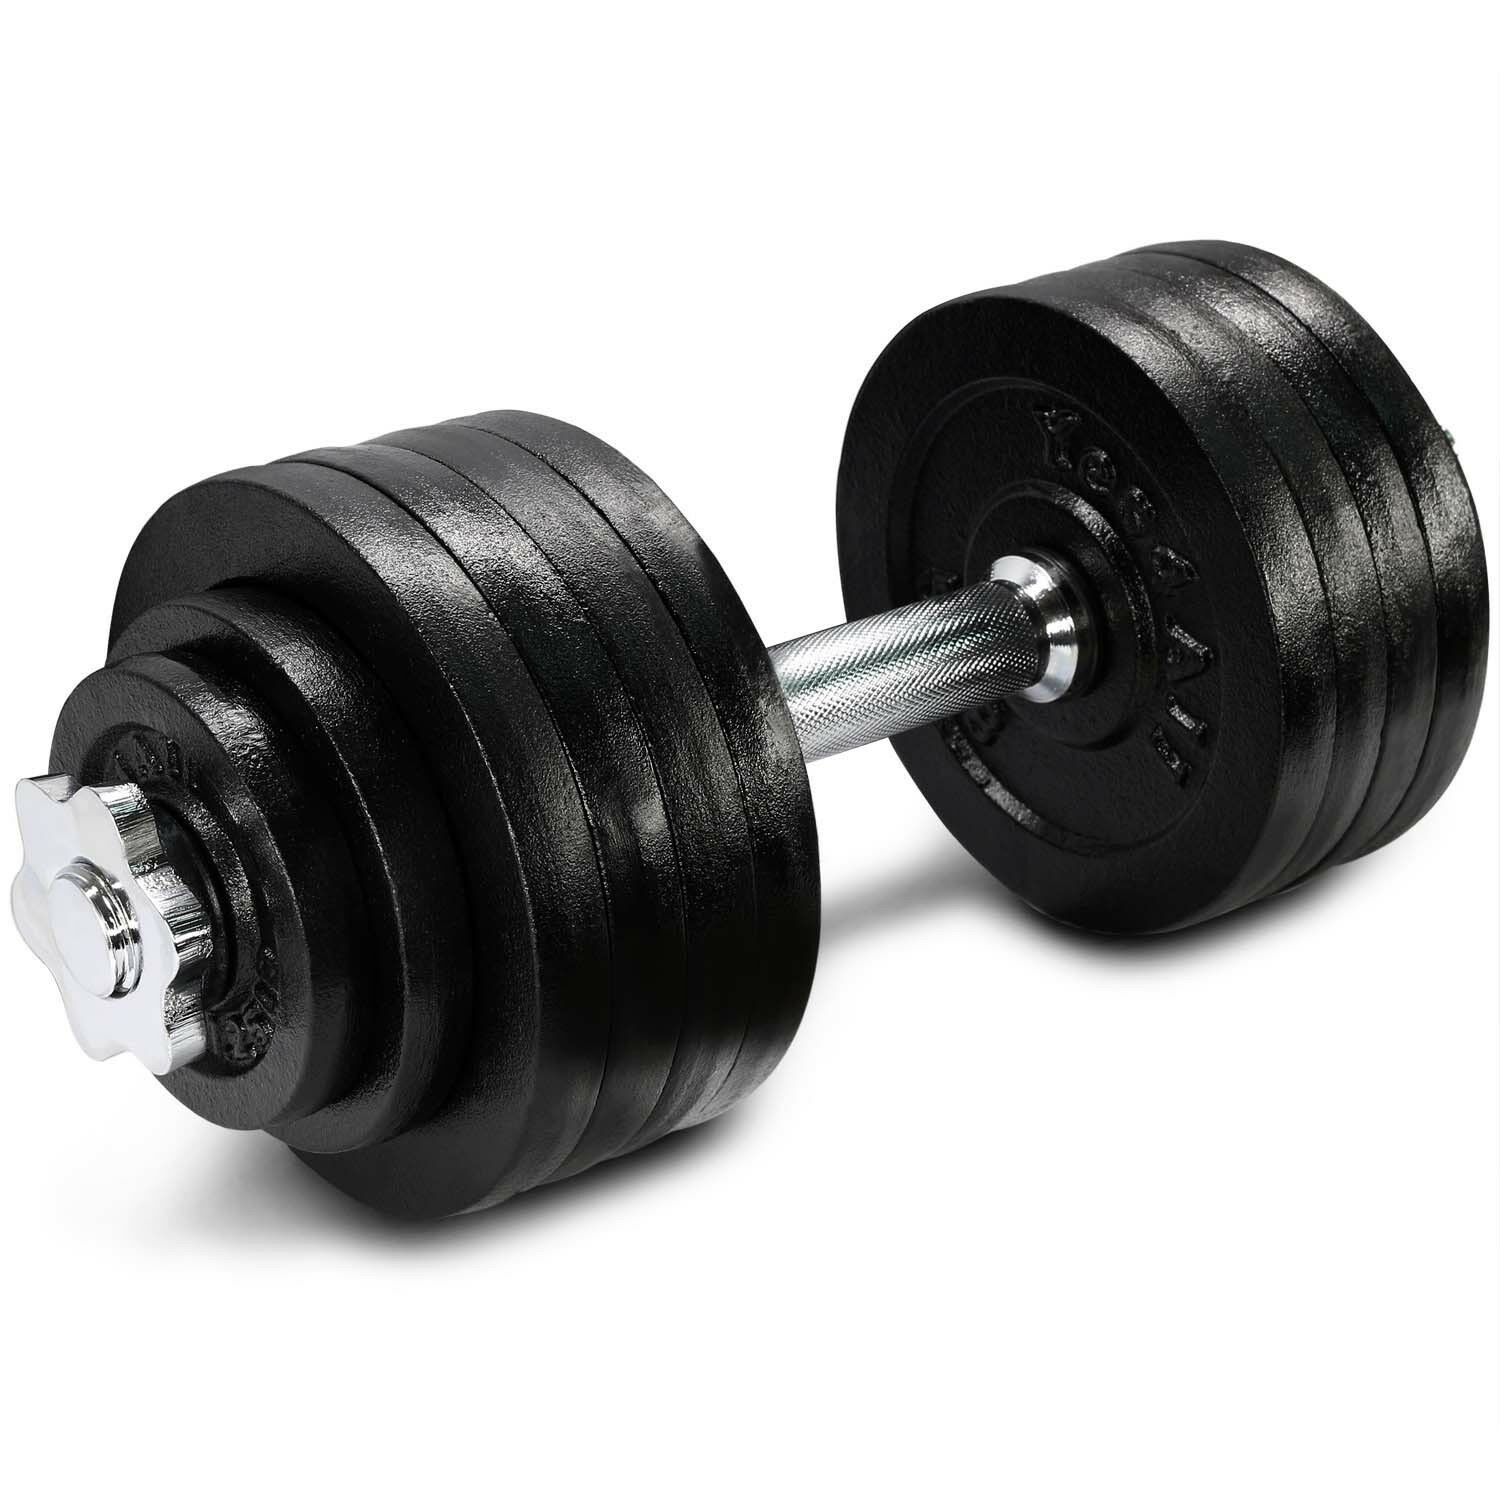 Yes4All 52.5 lb  Adjustable Weight Dumbbells for Gym Fitness (Single)²2  free shipping!